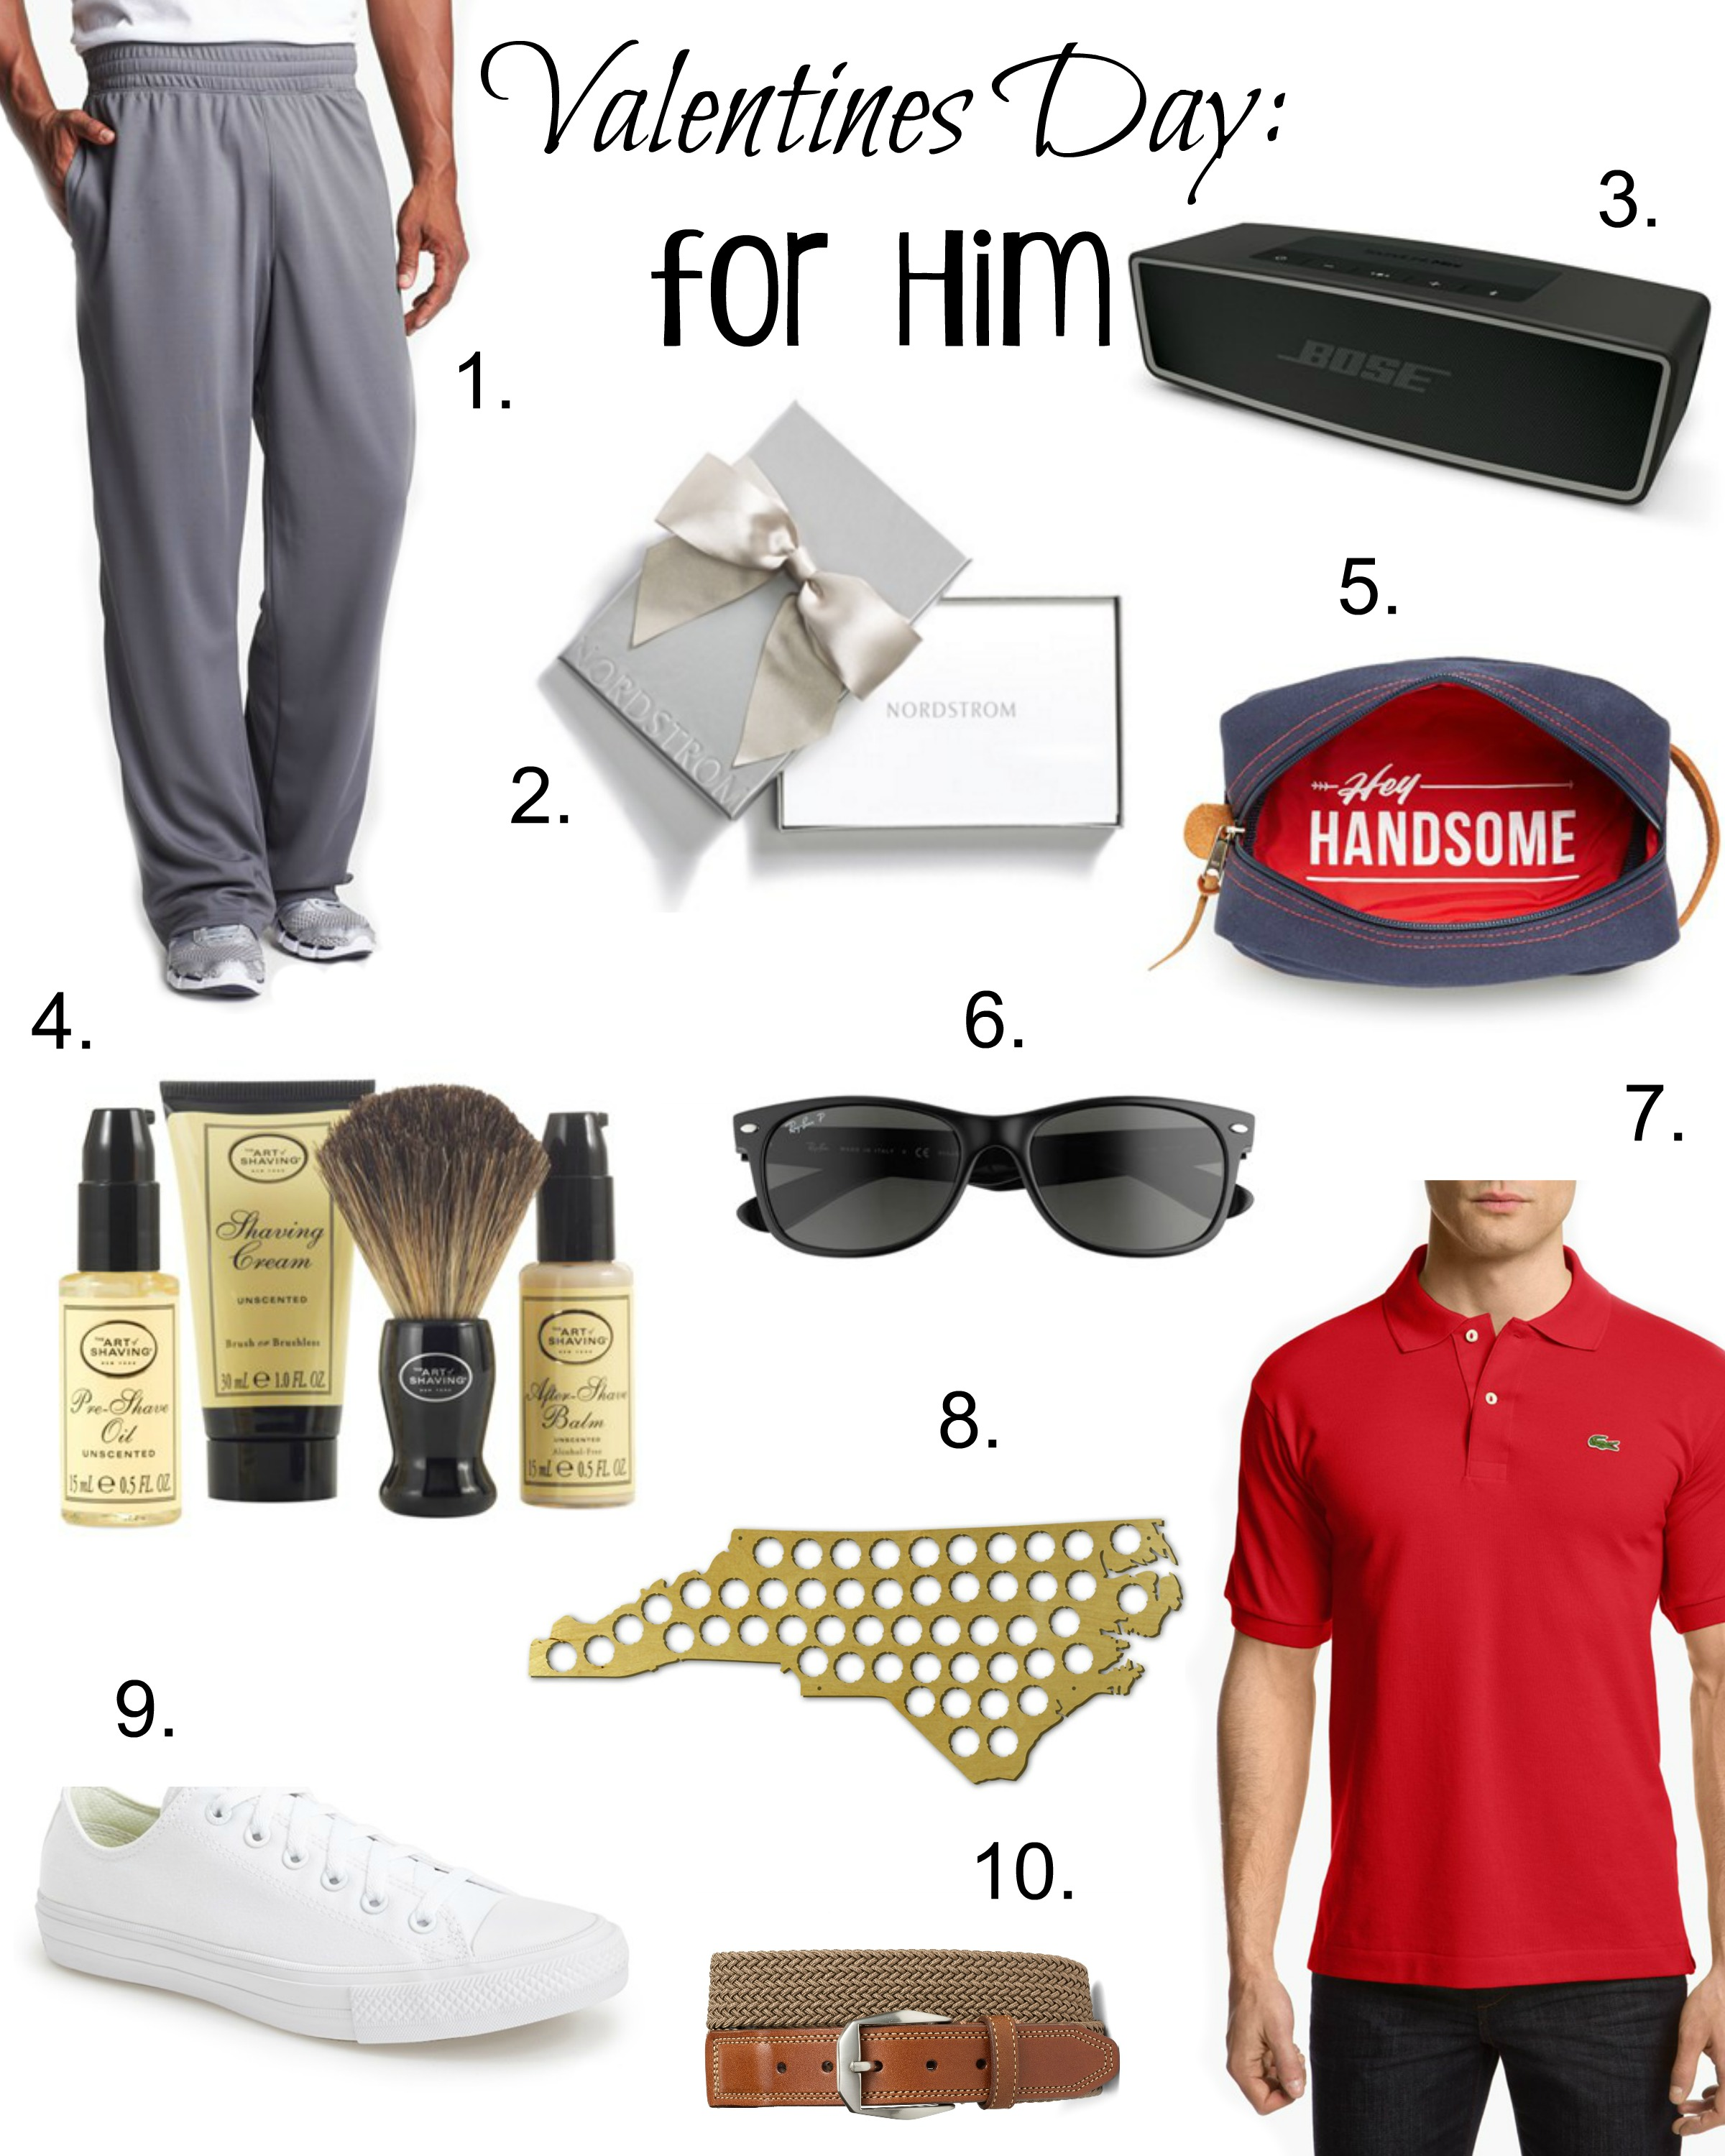 10 valentines day gifts for him coffee beans and bobby pins